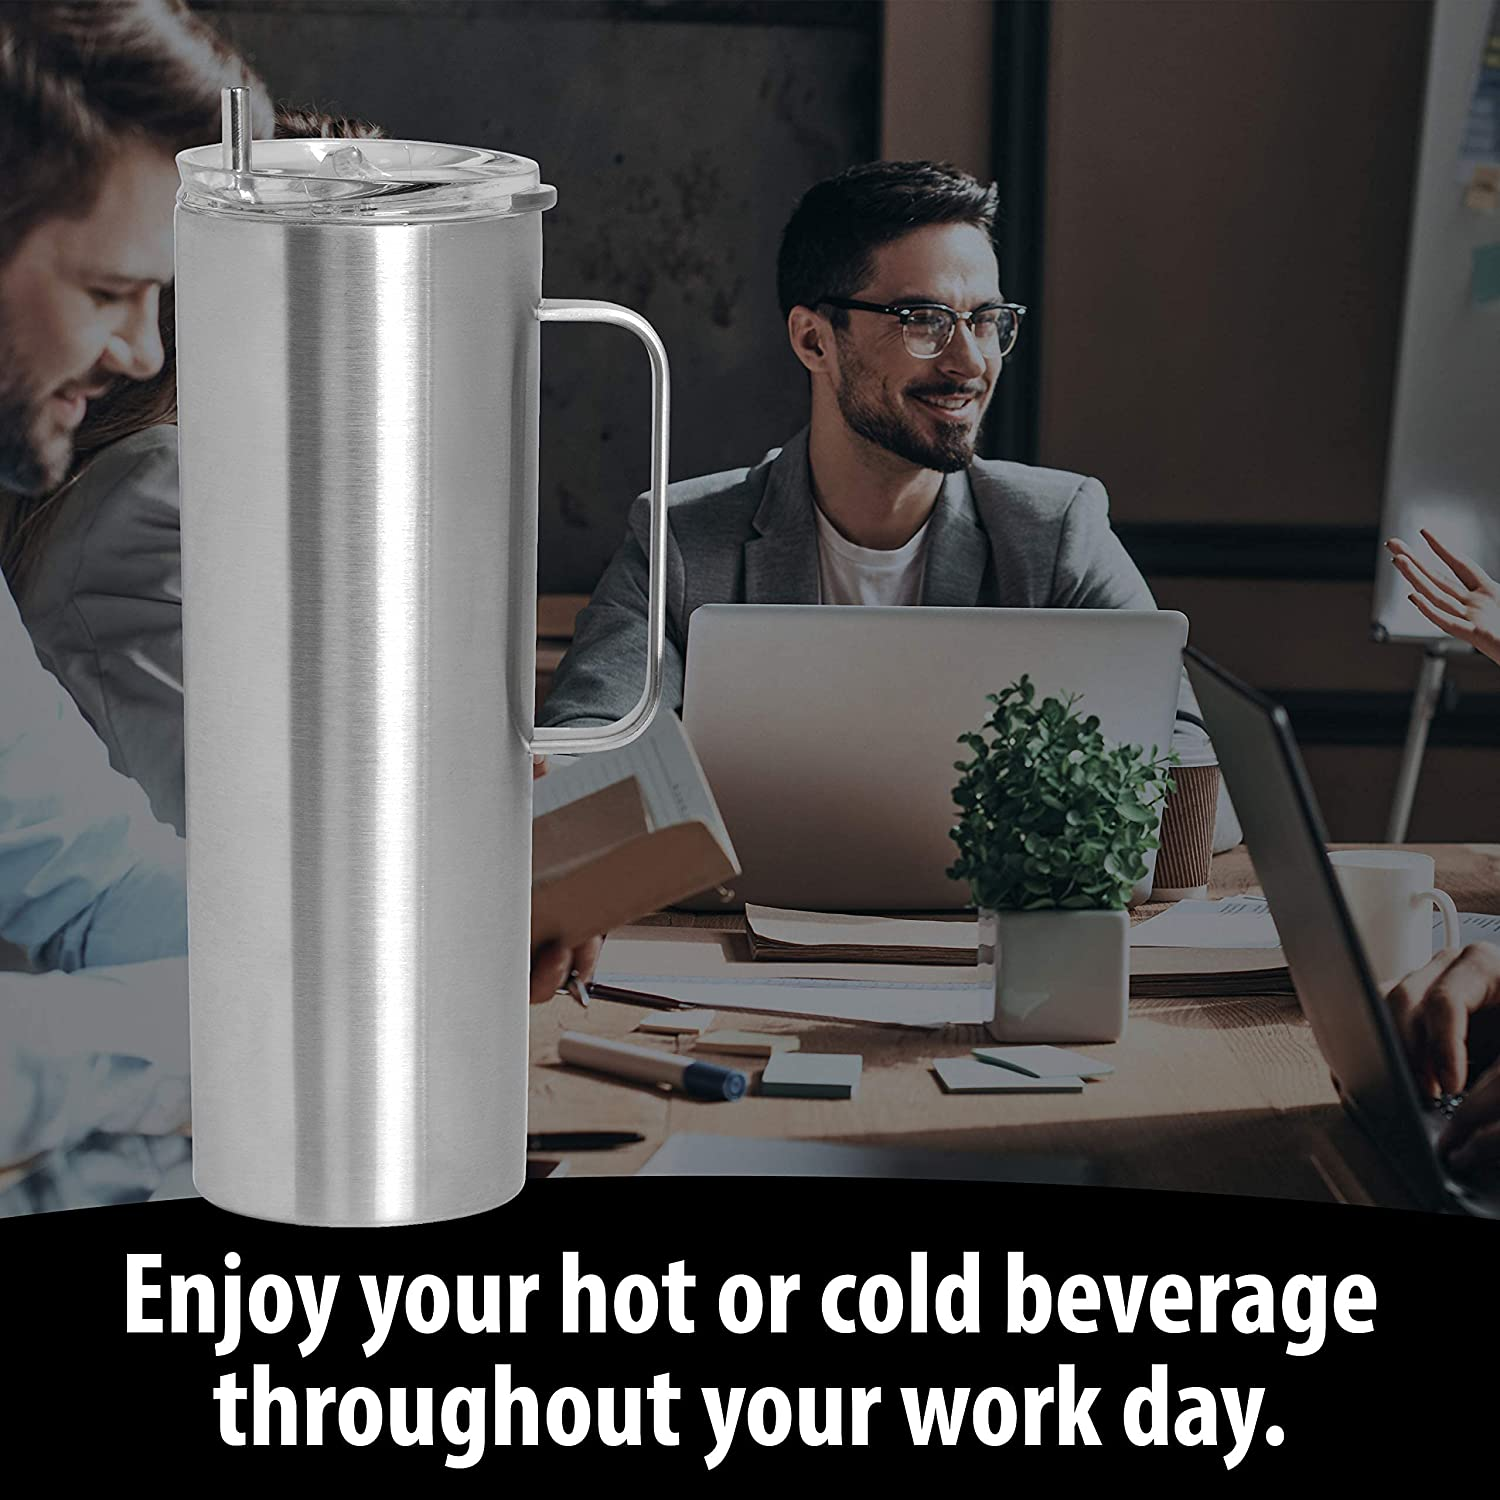 Double Wall Vacuum Insulated Skinny Tumbler with Handle - Tall & Slim Stainless Steel Drink Canister for Water, Coffee, Soda, Tea - Portable Hot & Cold Beverage Mug with Straw & Clear Lid - 20oz